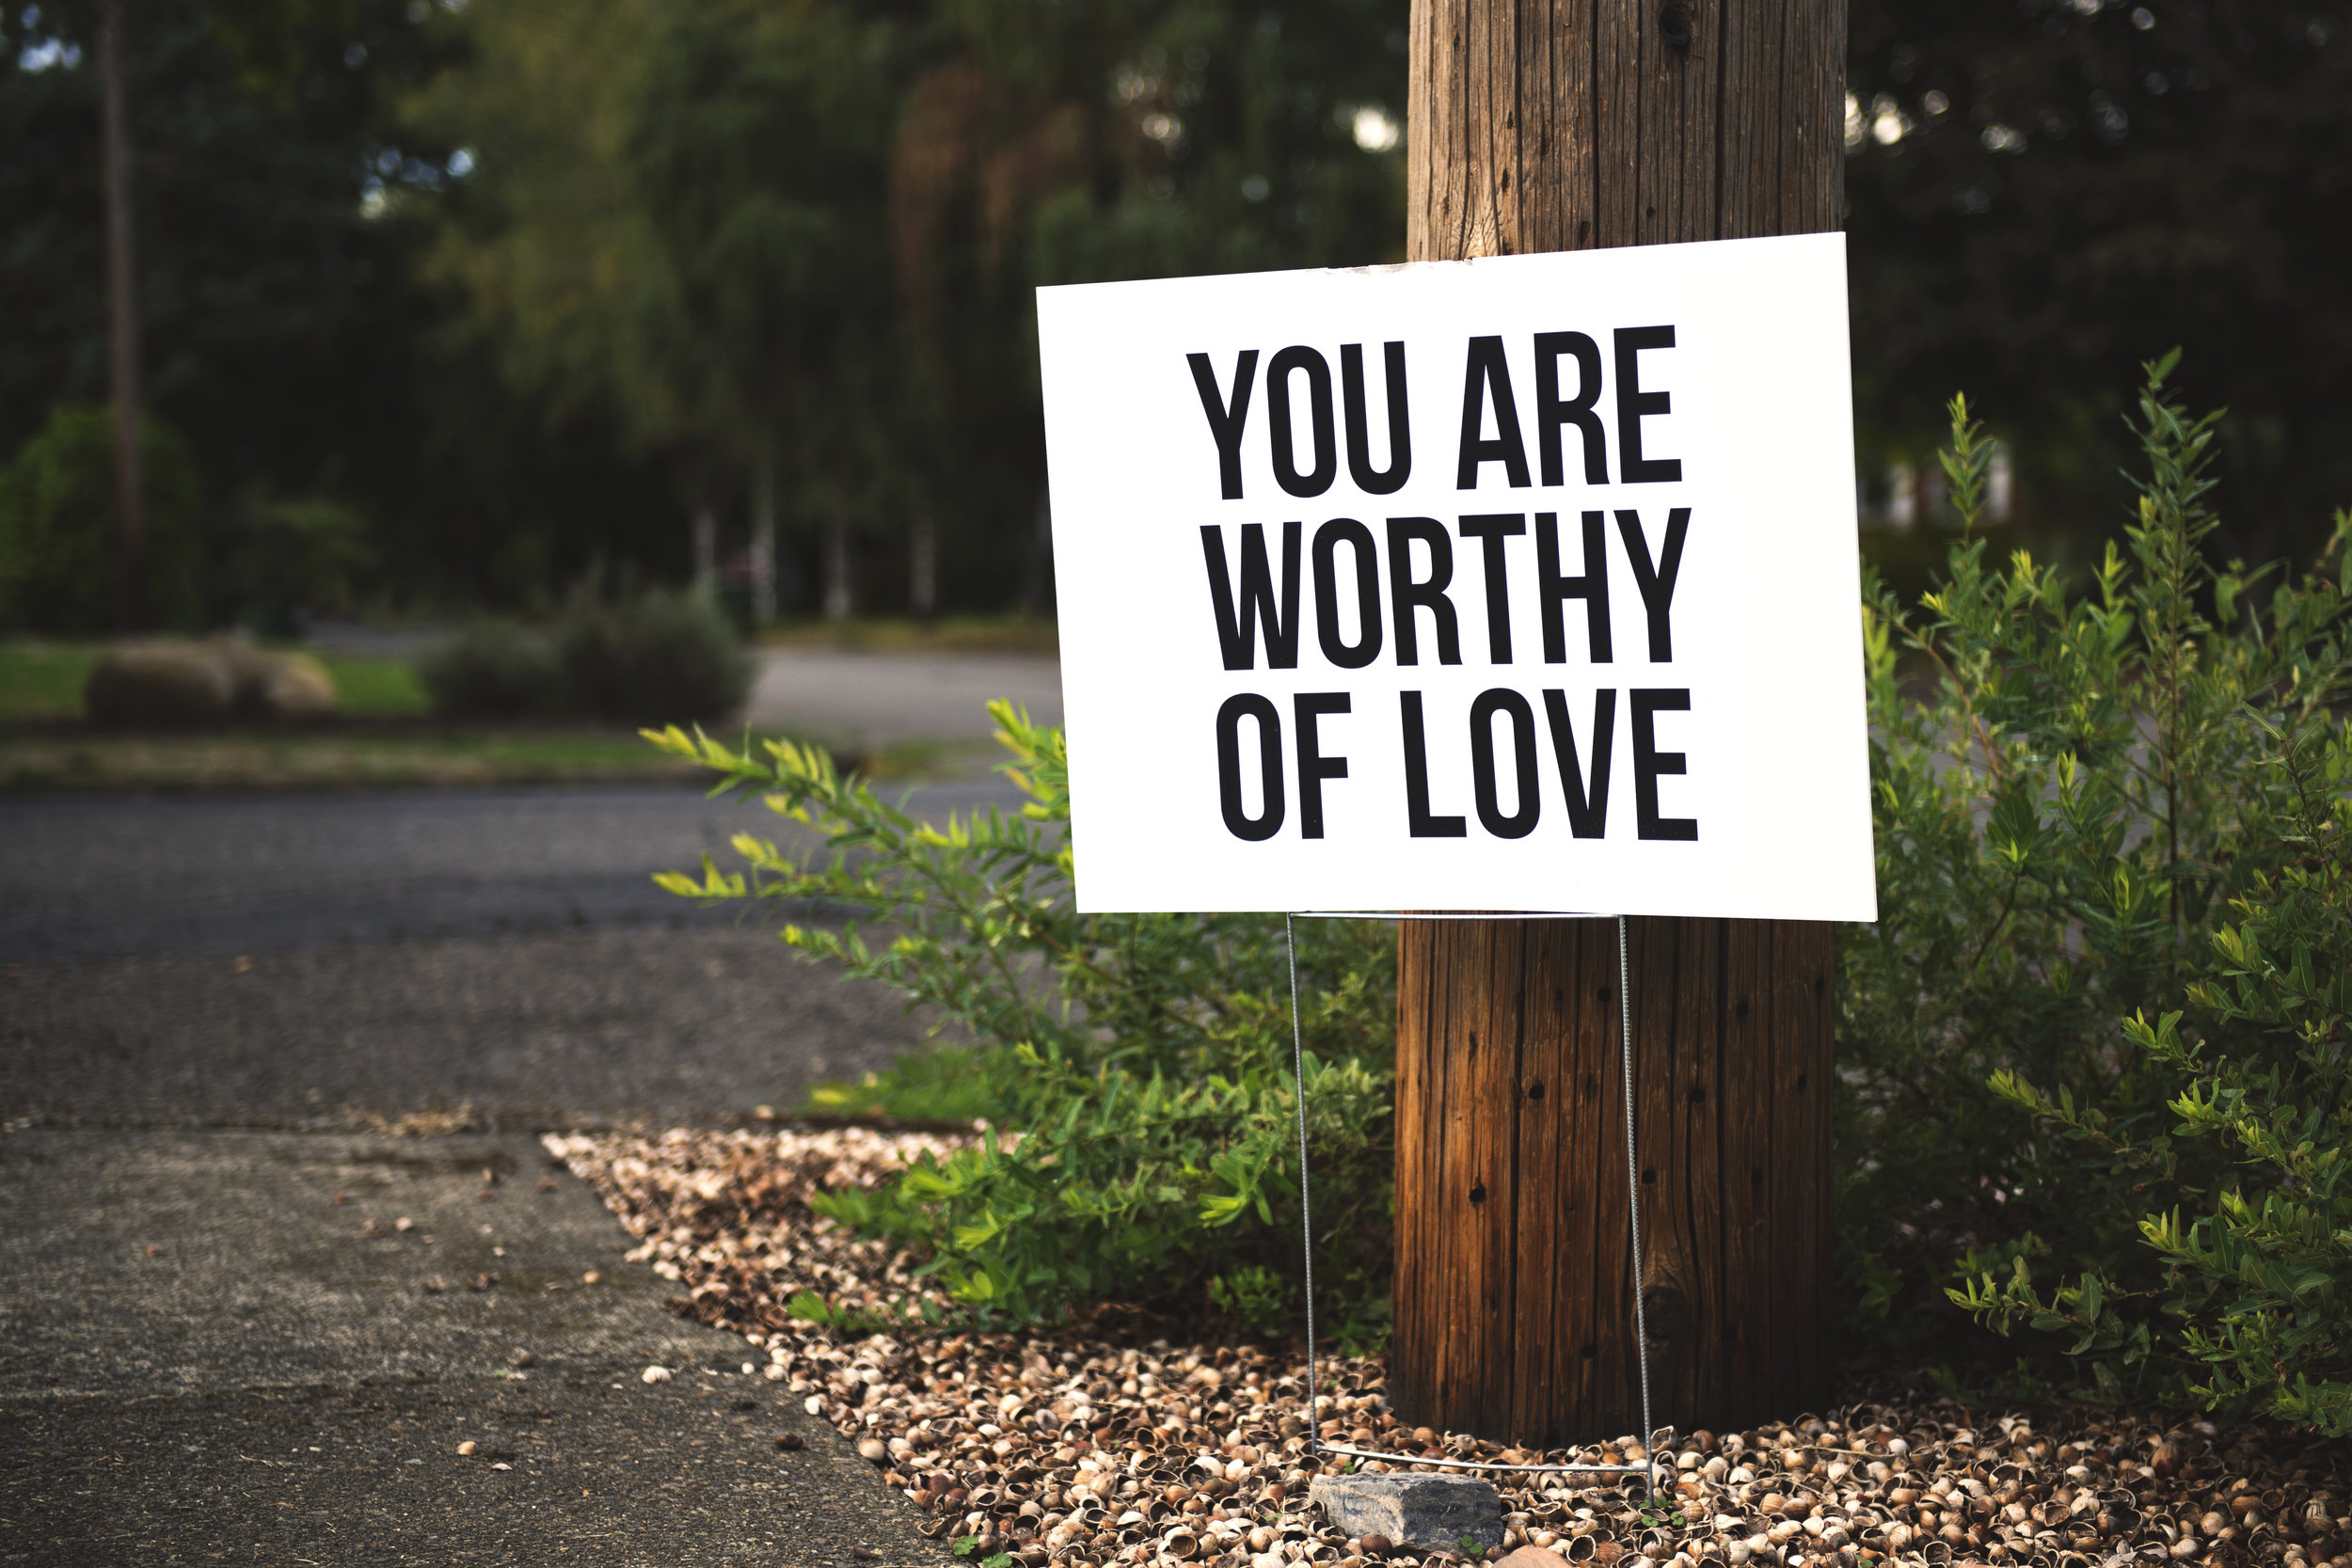 This e-book is meant to be a reminder of this universal truth - You, as you are today, are worthy of all the love in the universe!